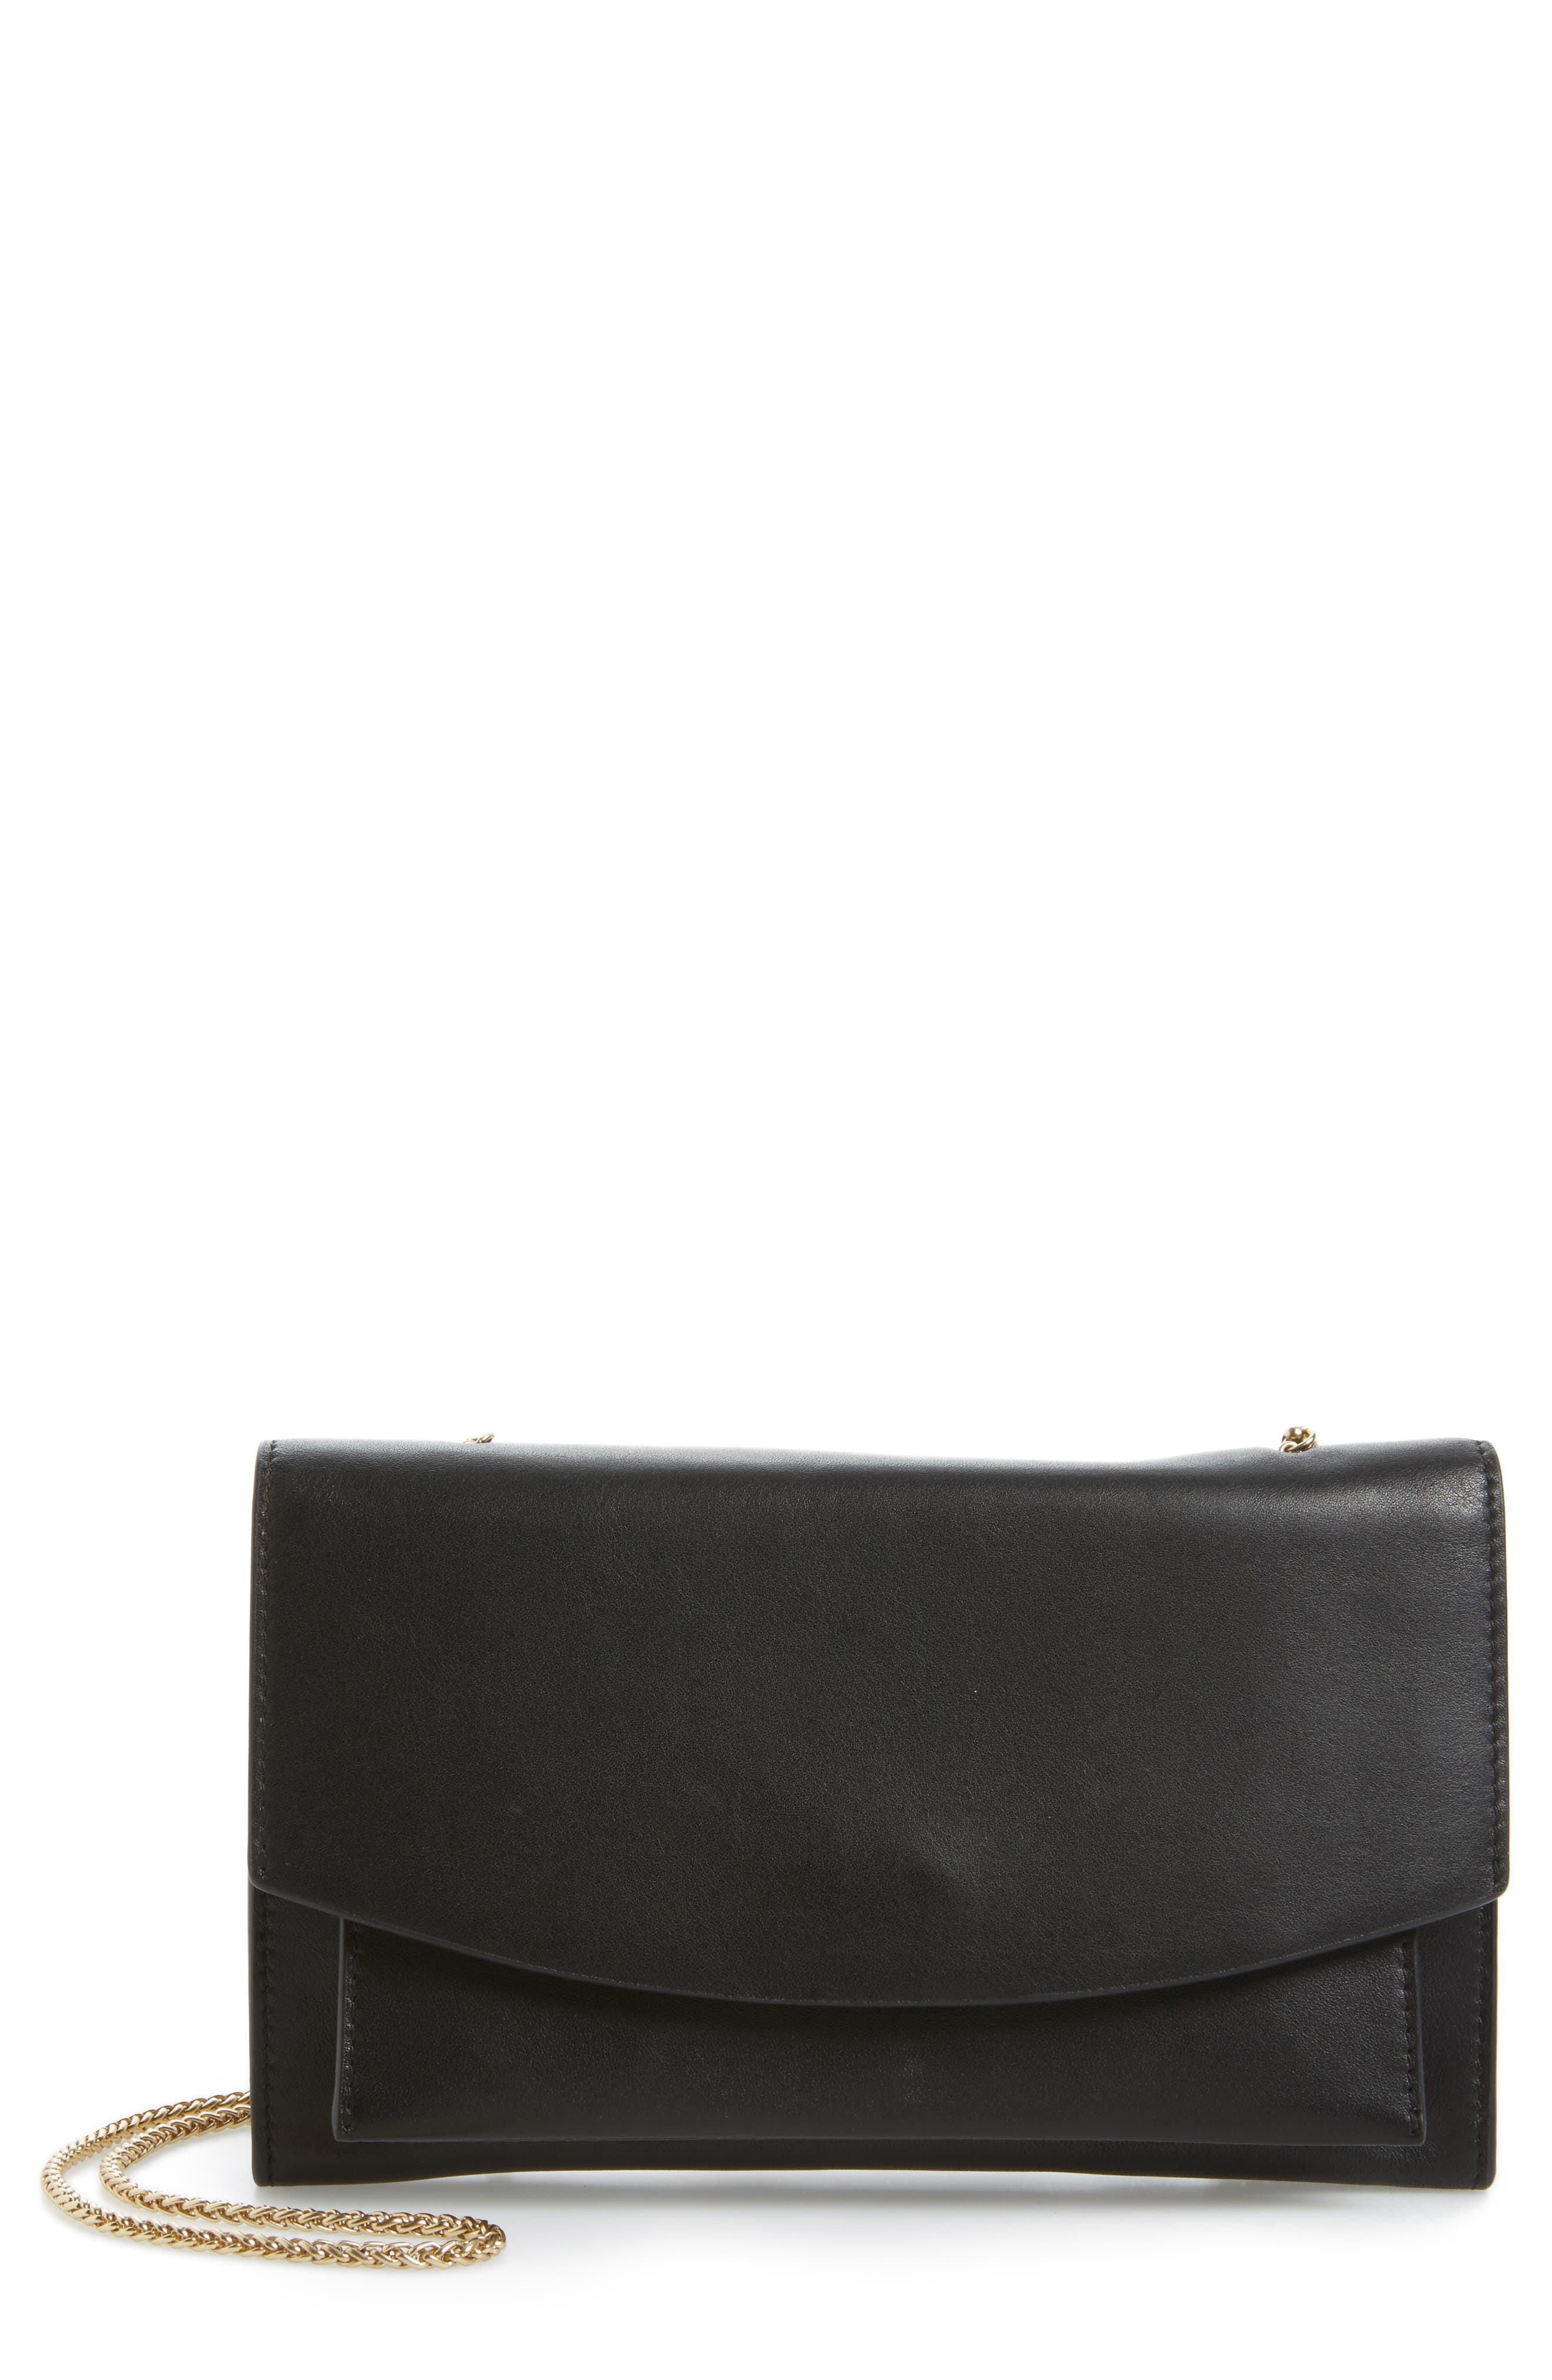 Alternate Image 1 Selected - Skagen Eryka Leather Envelope Clutch with Detachable Chain